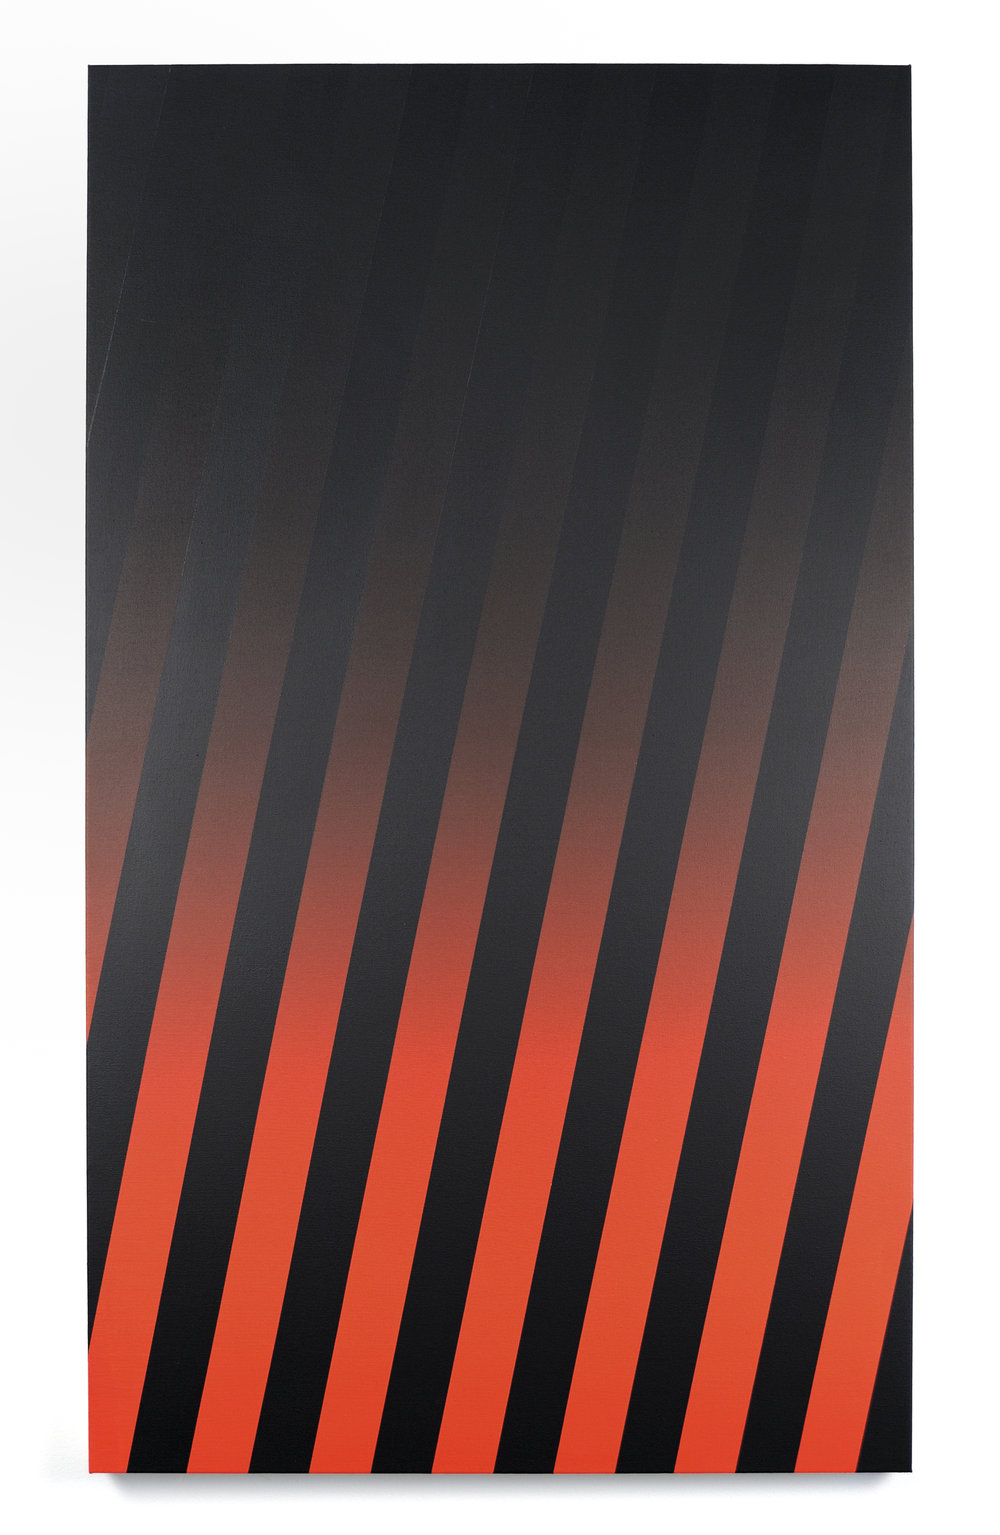 Untitled, 2010 acrylic on canvas 120 x 70 cm - 47 1/4 x 27 1/2 inches